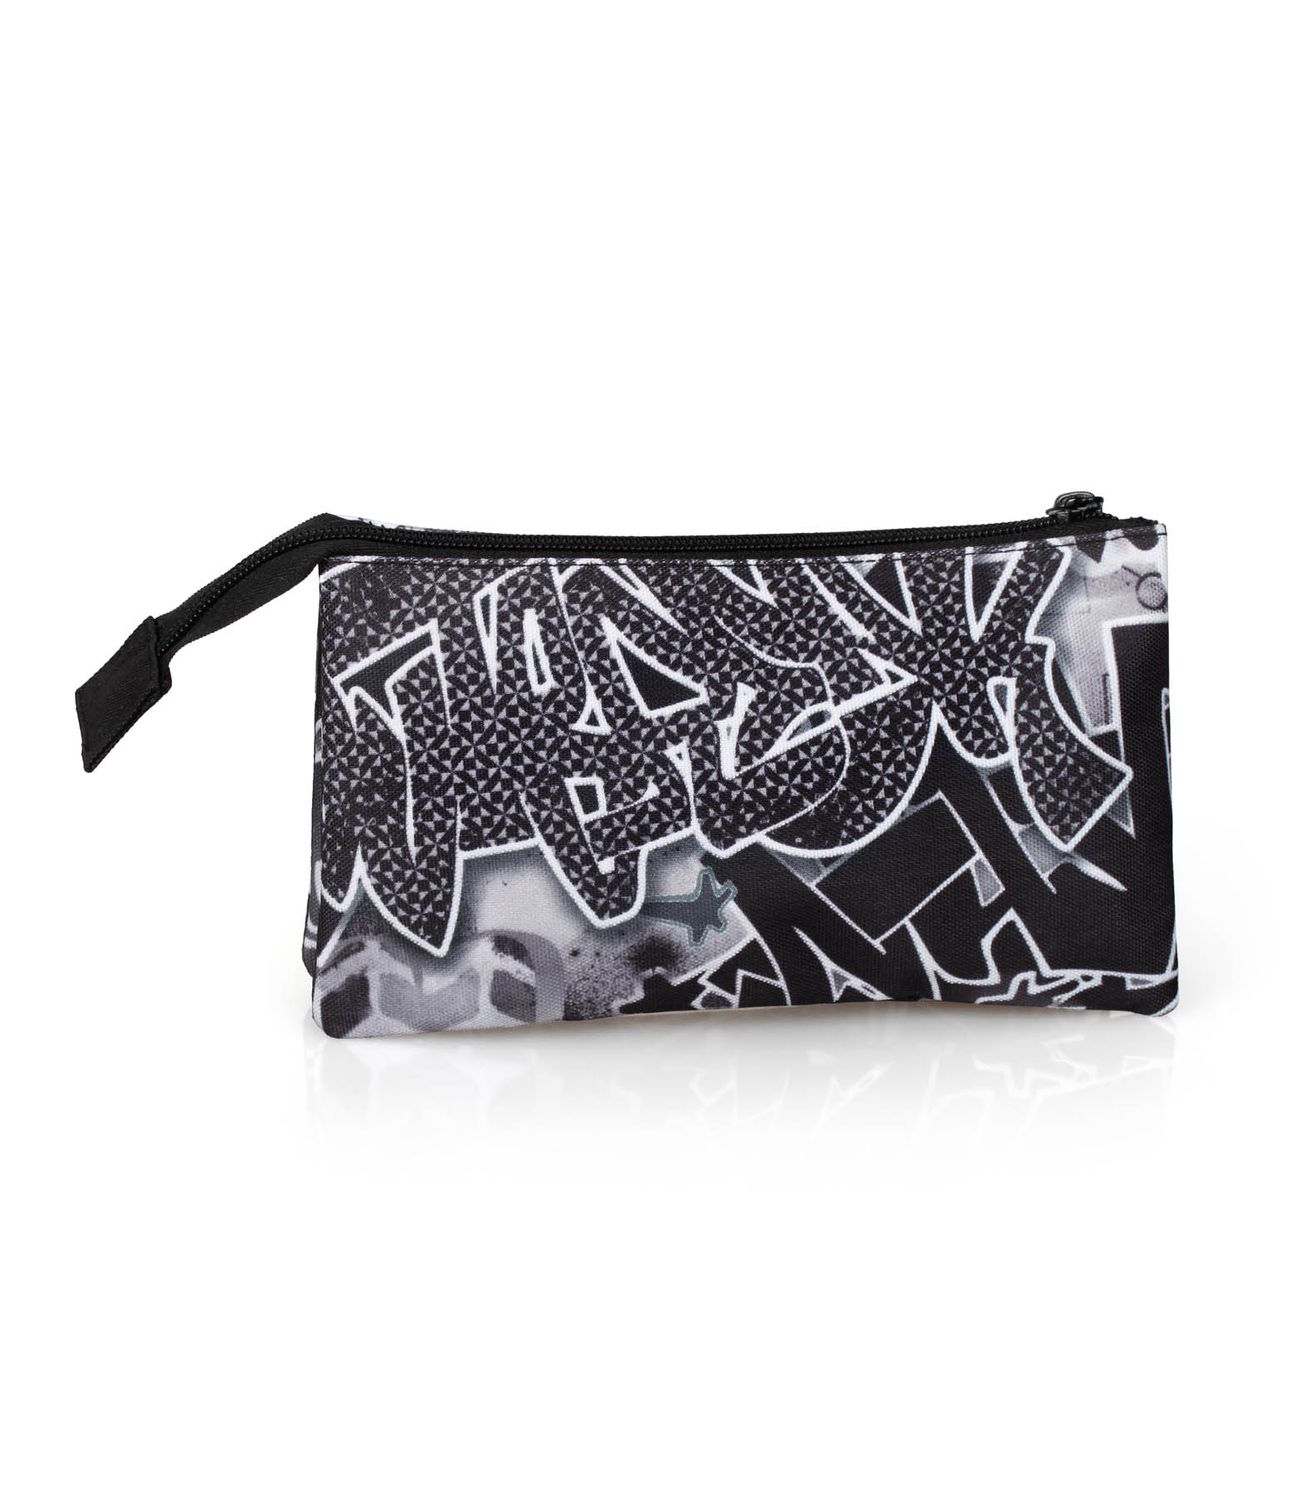 Pencil Case Triple Compartment GRAFFITI OUTBREAK – image 2